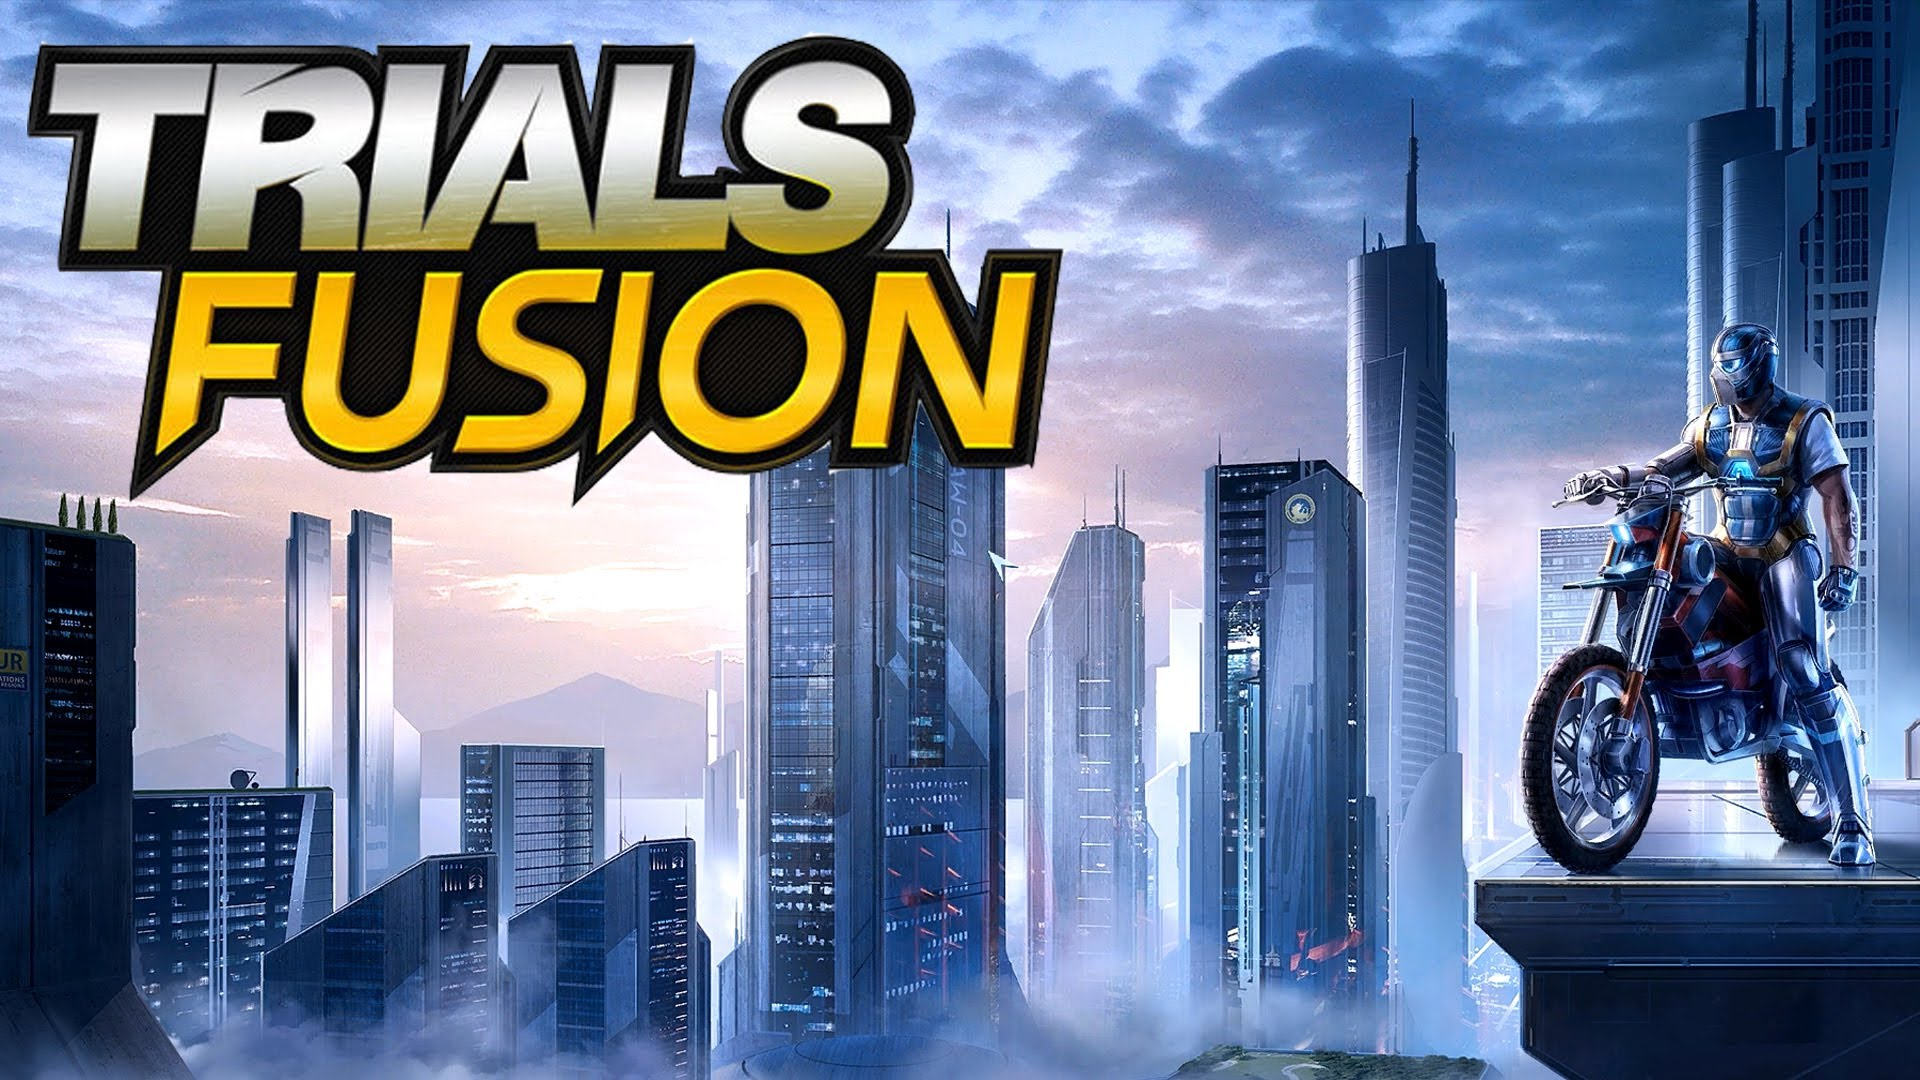 Trials Fusion Awesome Level MAX trailer!